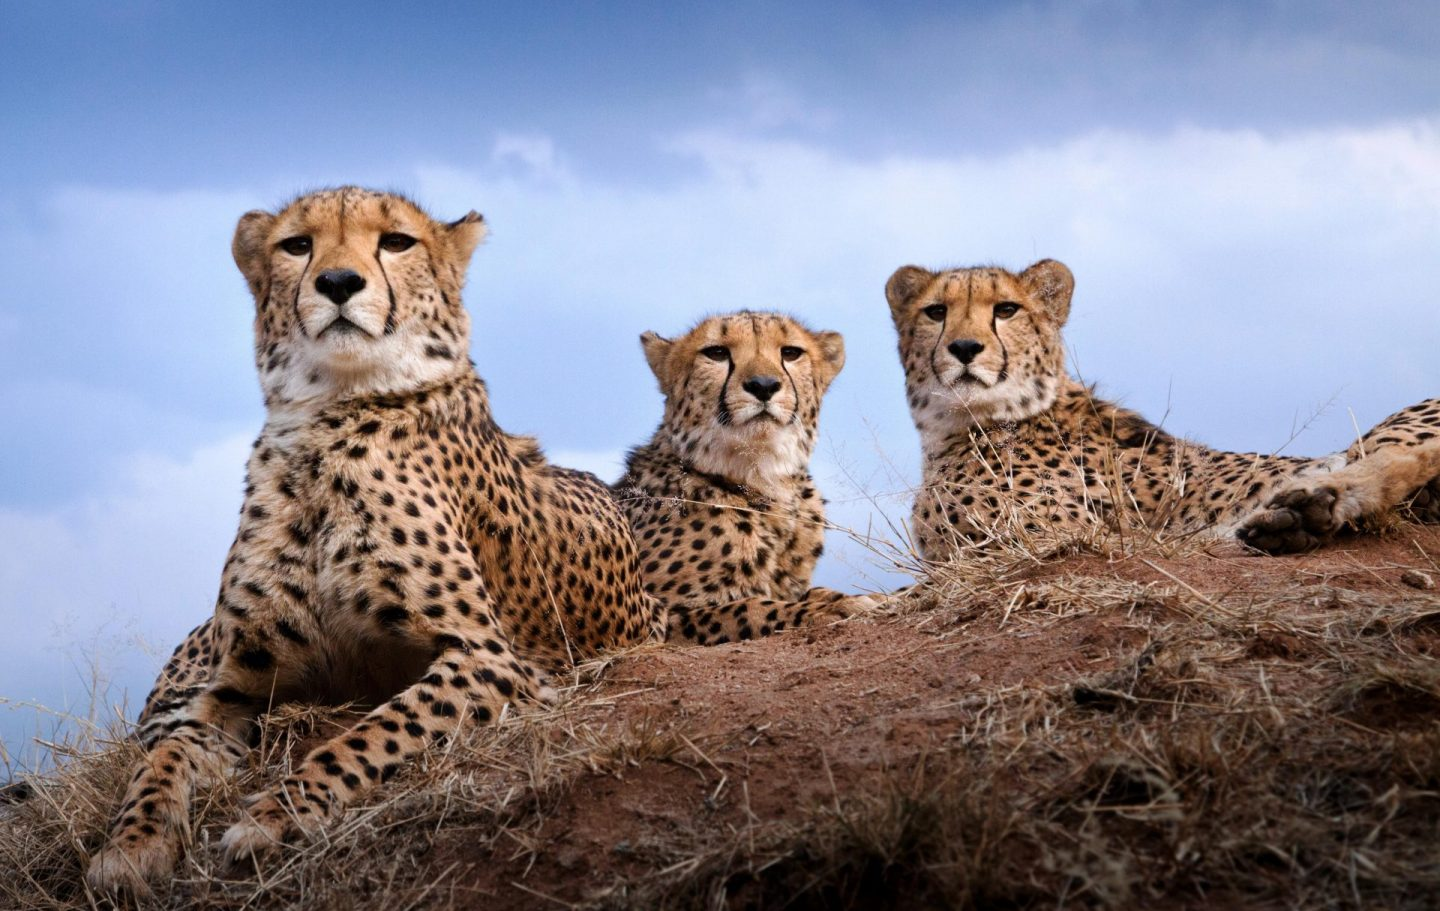 Tusk Trust - Cheetah Conservation Fund